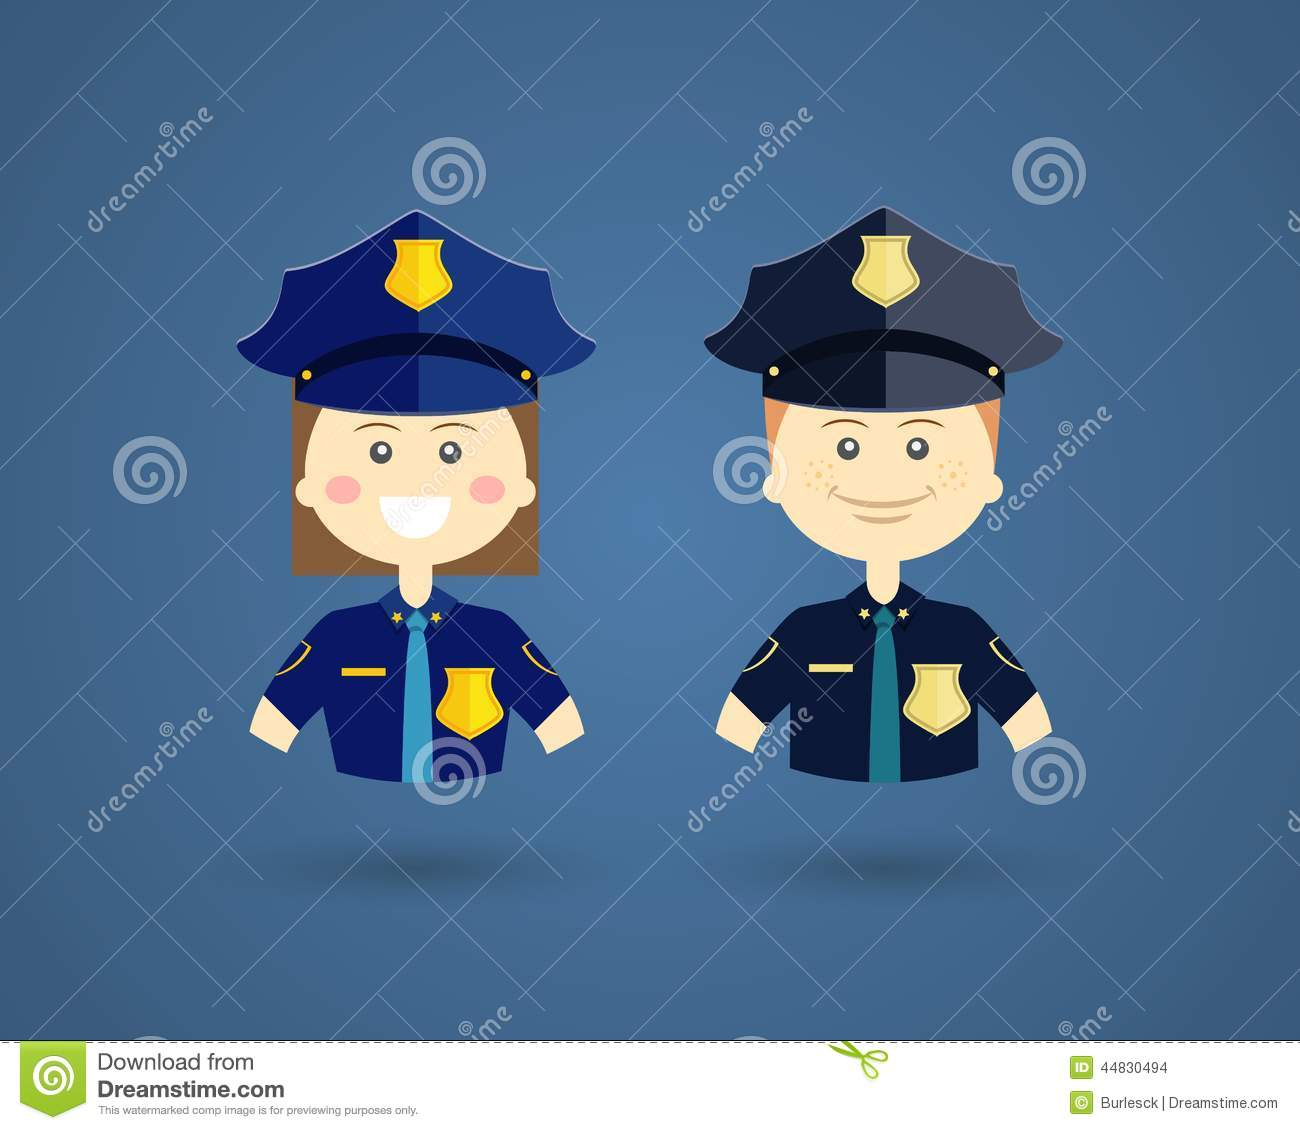 how to draw a female police officer